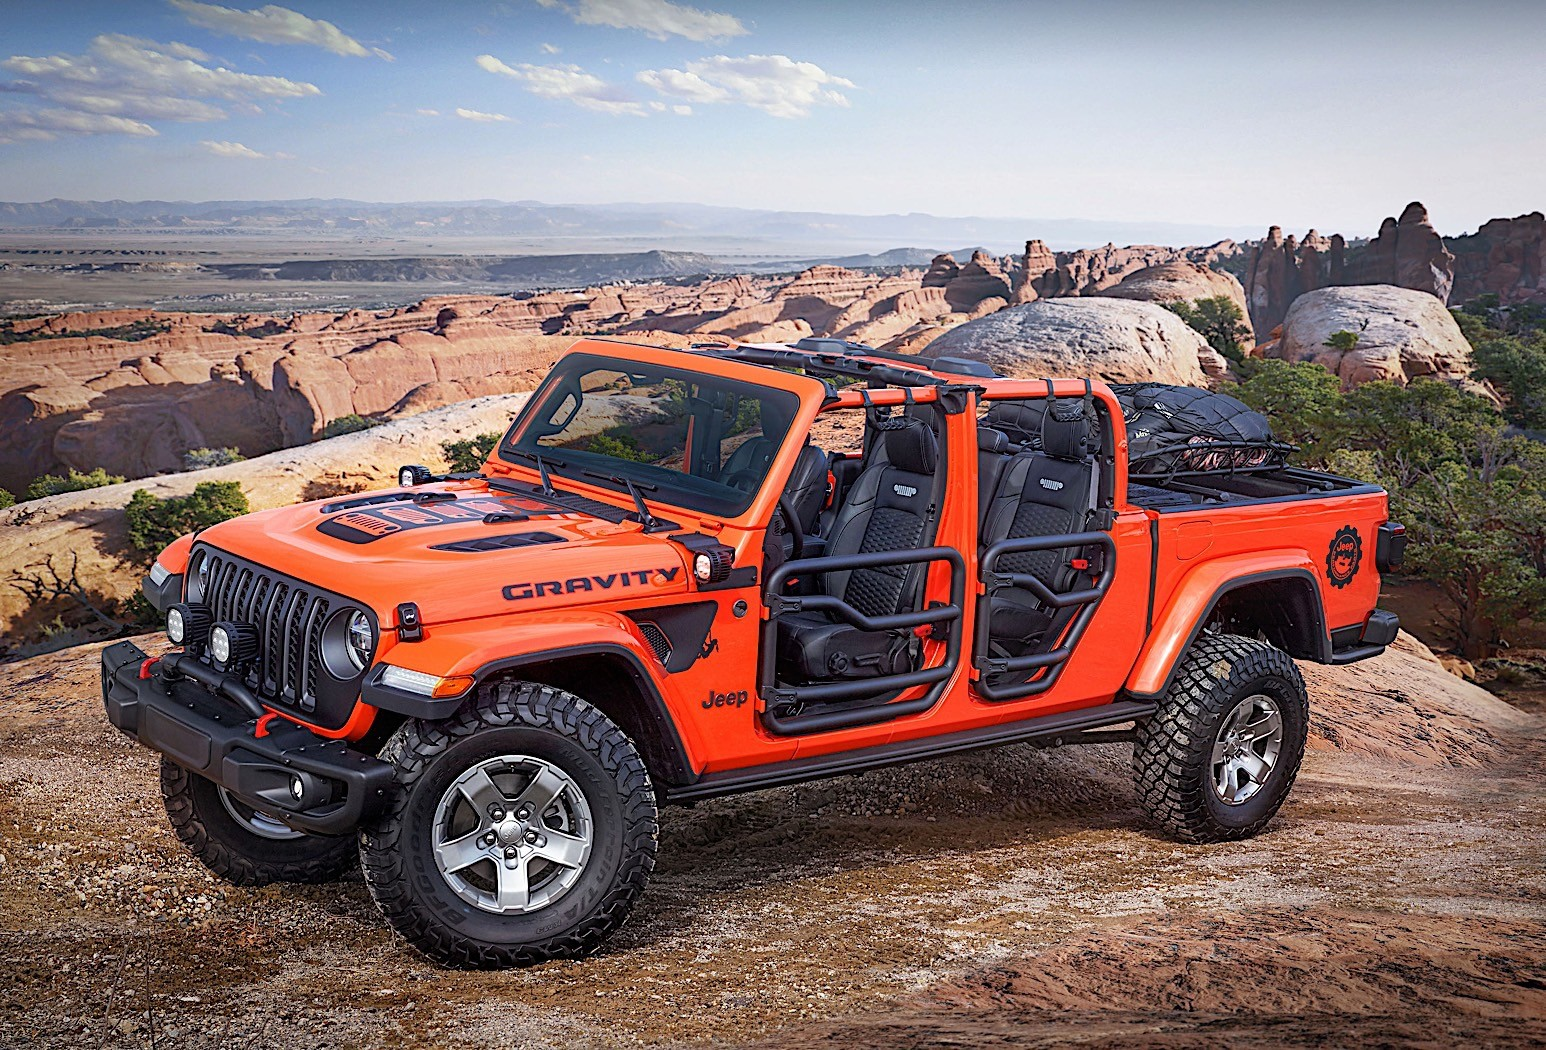 Here Are the Insane Jeep Gladiator Concepts for the 2019 ... Jeep Wrangler Rubicon 4 Door Lifted